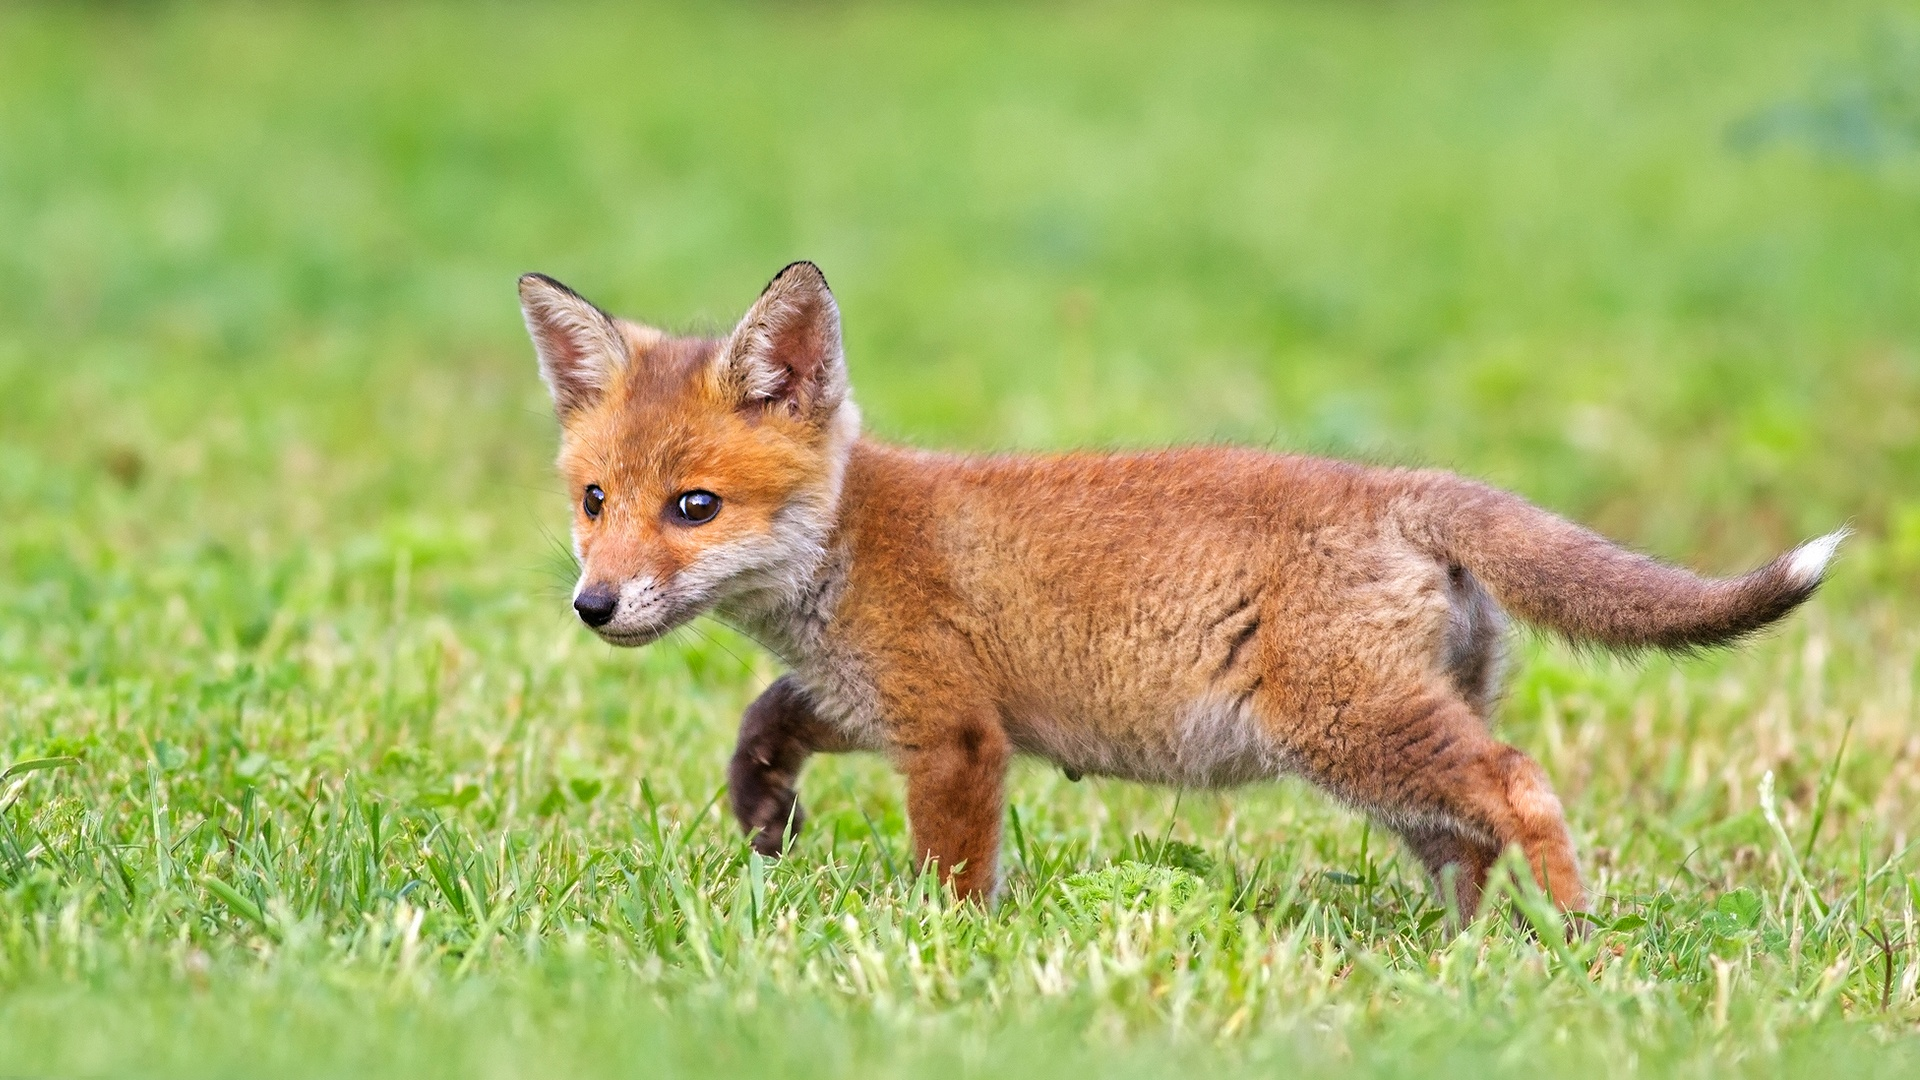 Cute fox cub Wallpaper in 1920x1080 HD Resolutions